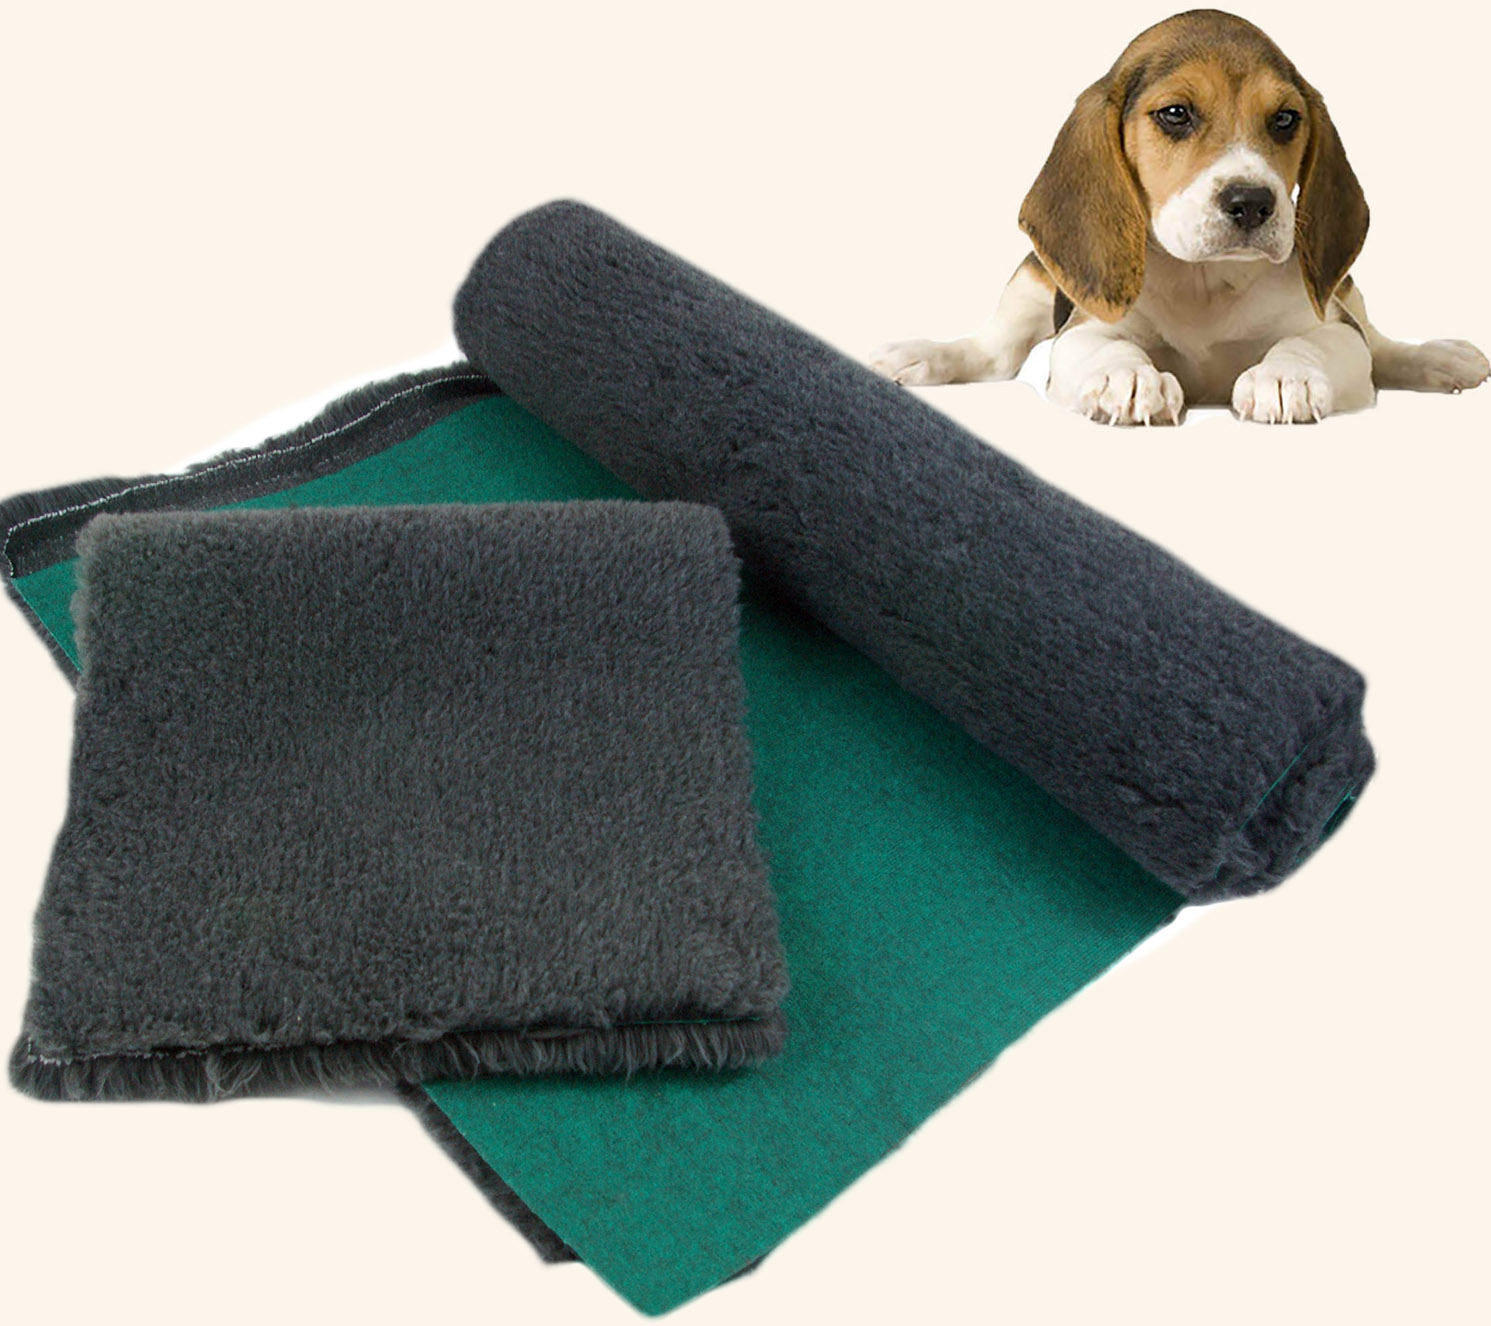 Traditional Vet Beds & Vet Bedding